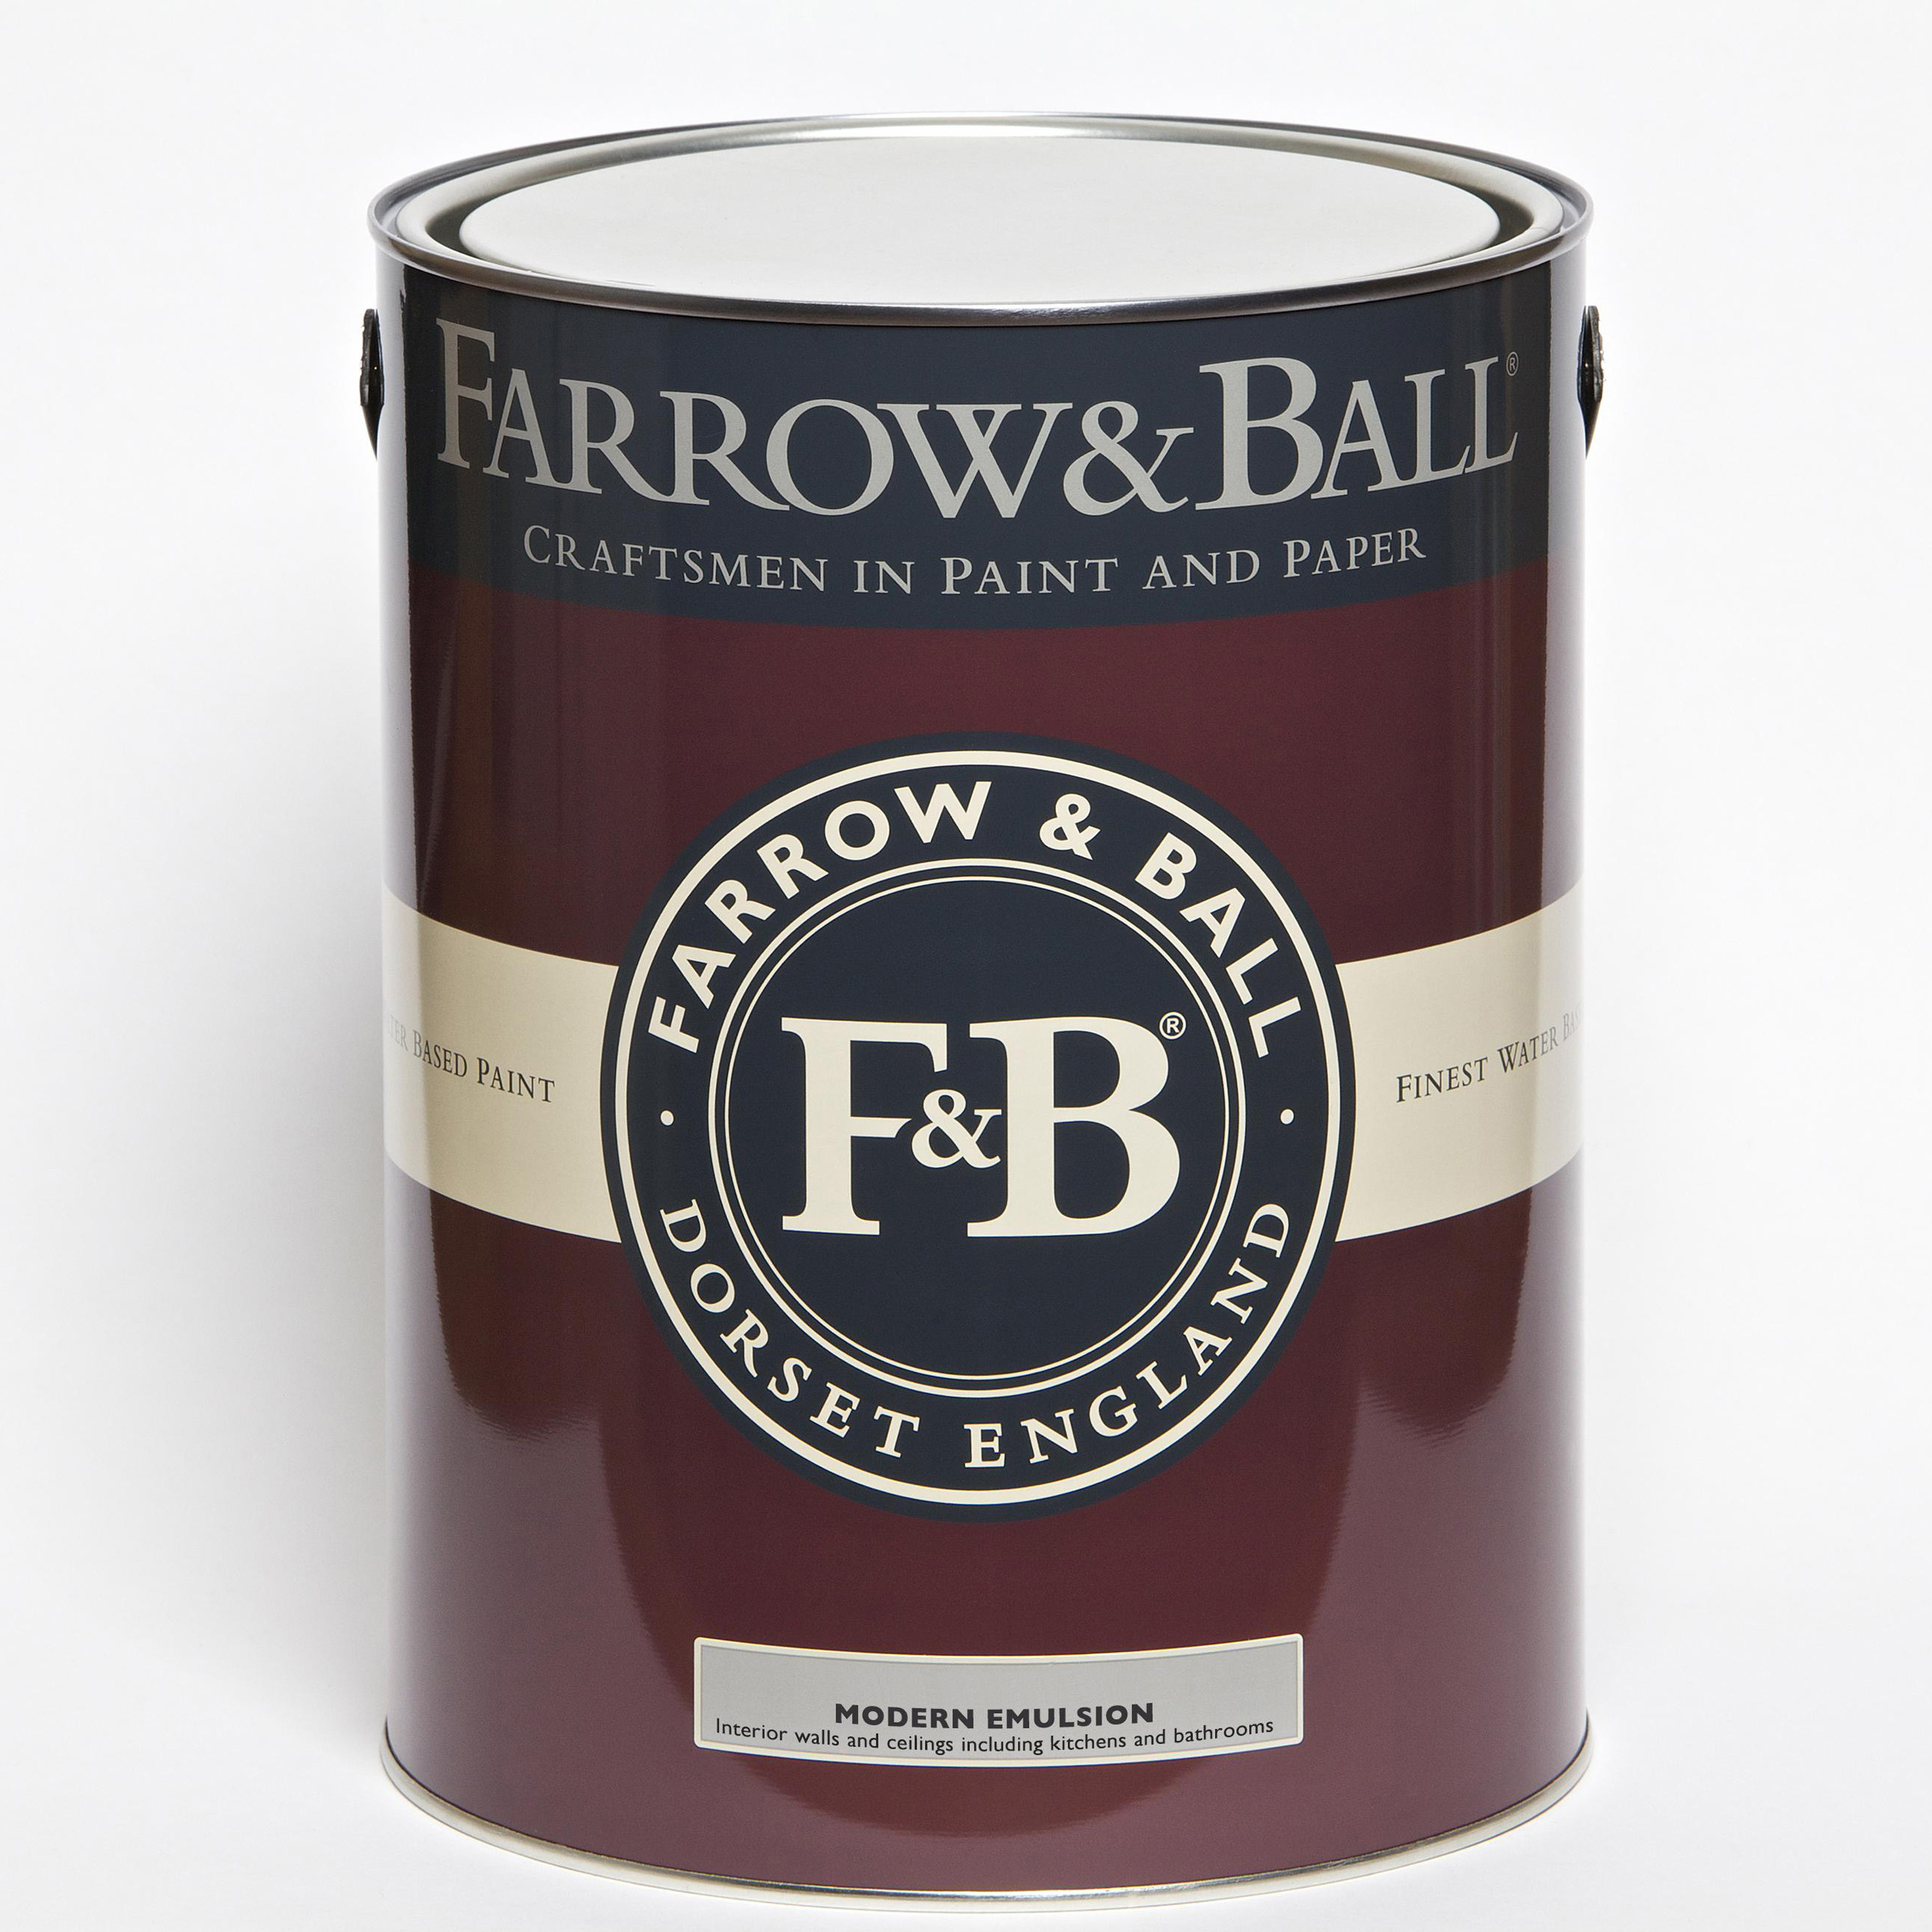 S g bailey paints ltd interior finishes Best indoor paint brand